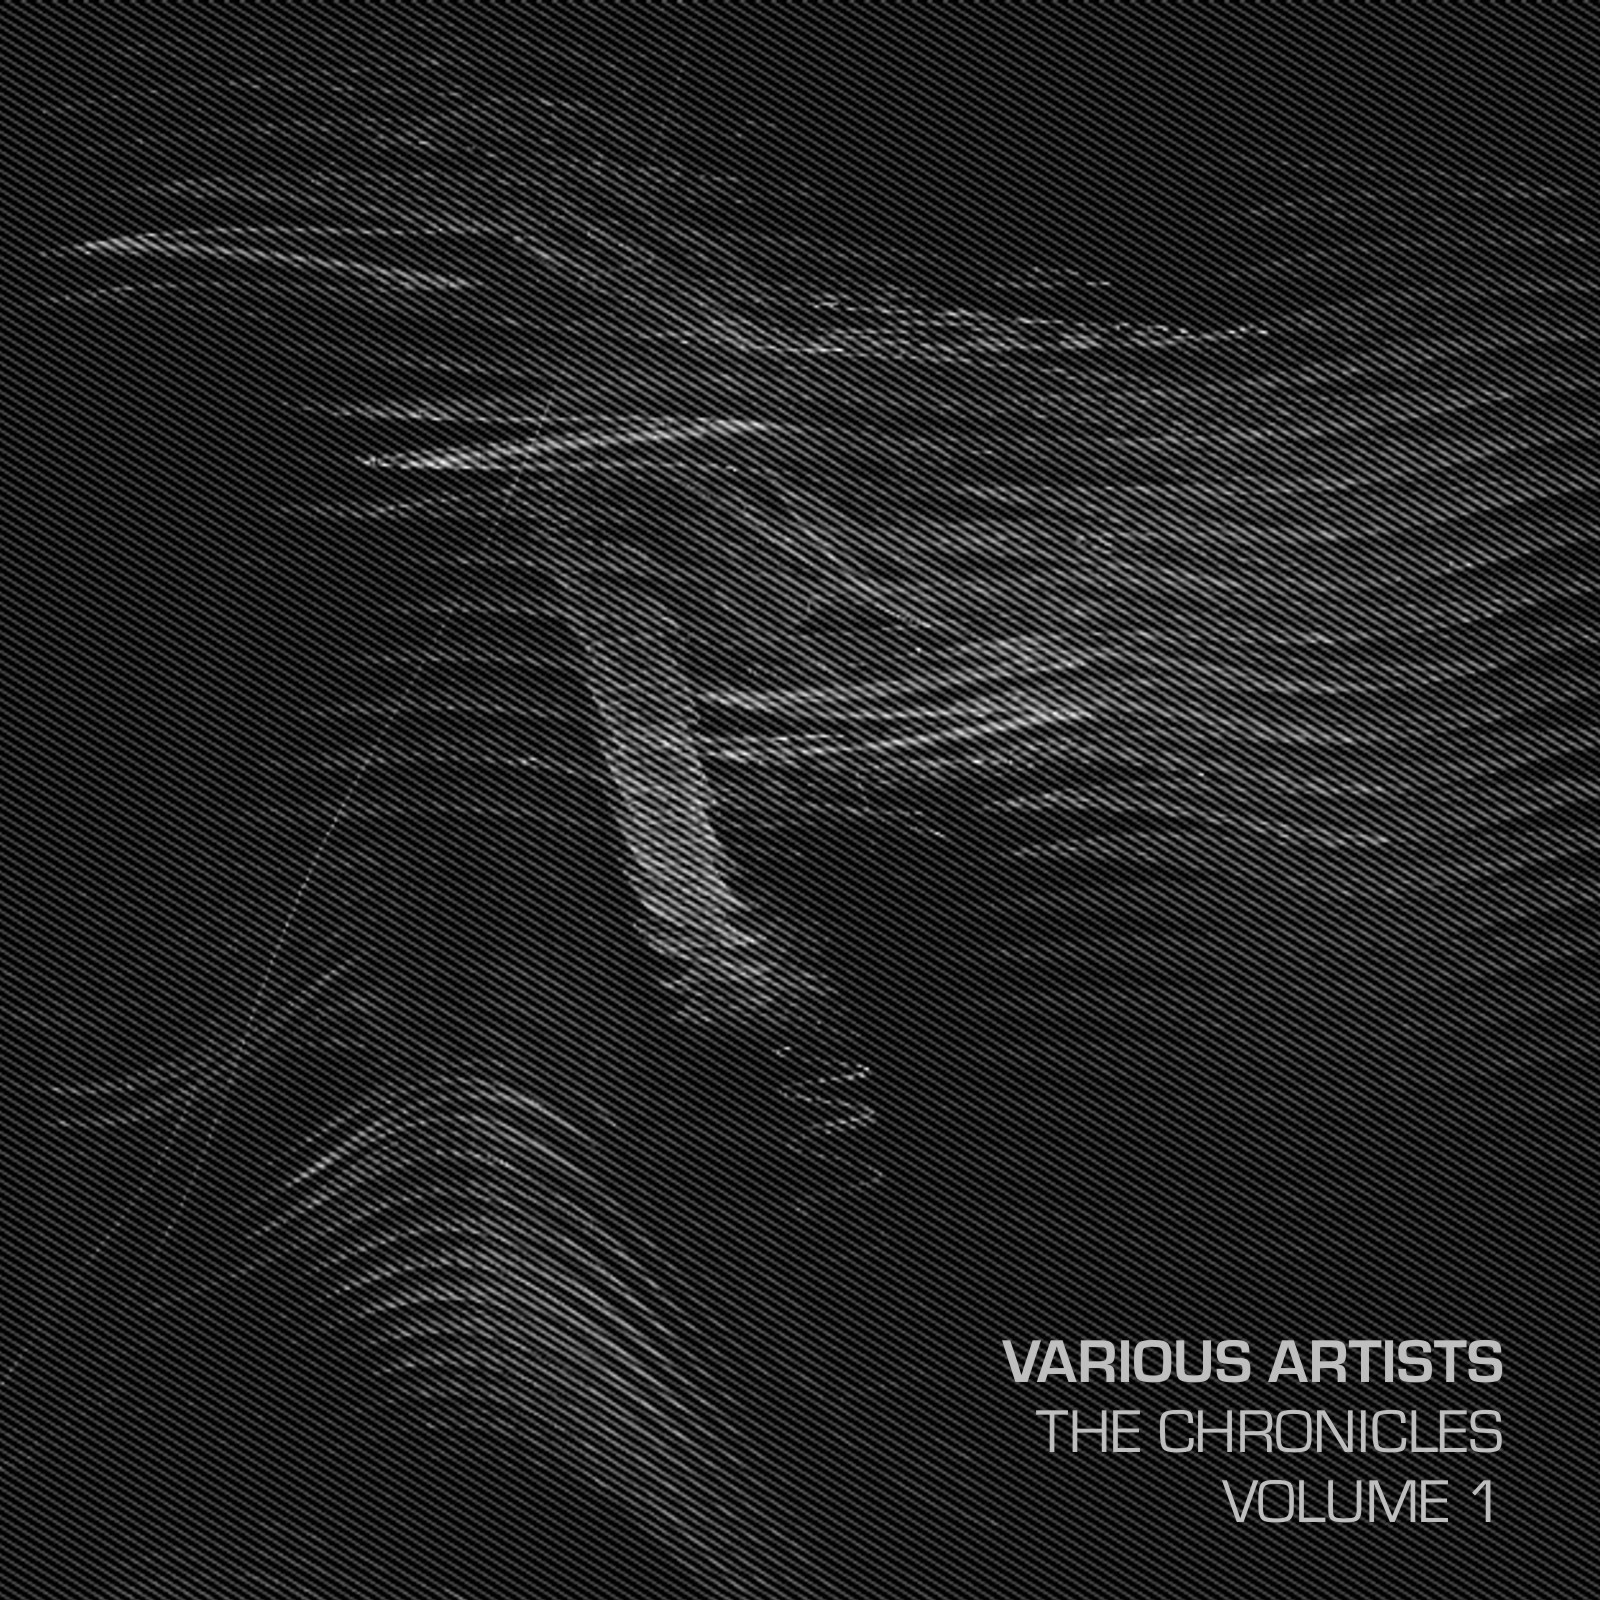 Various Artists - The Chronicles (Volume 1) - Modular Expansion records MELTD01